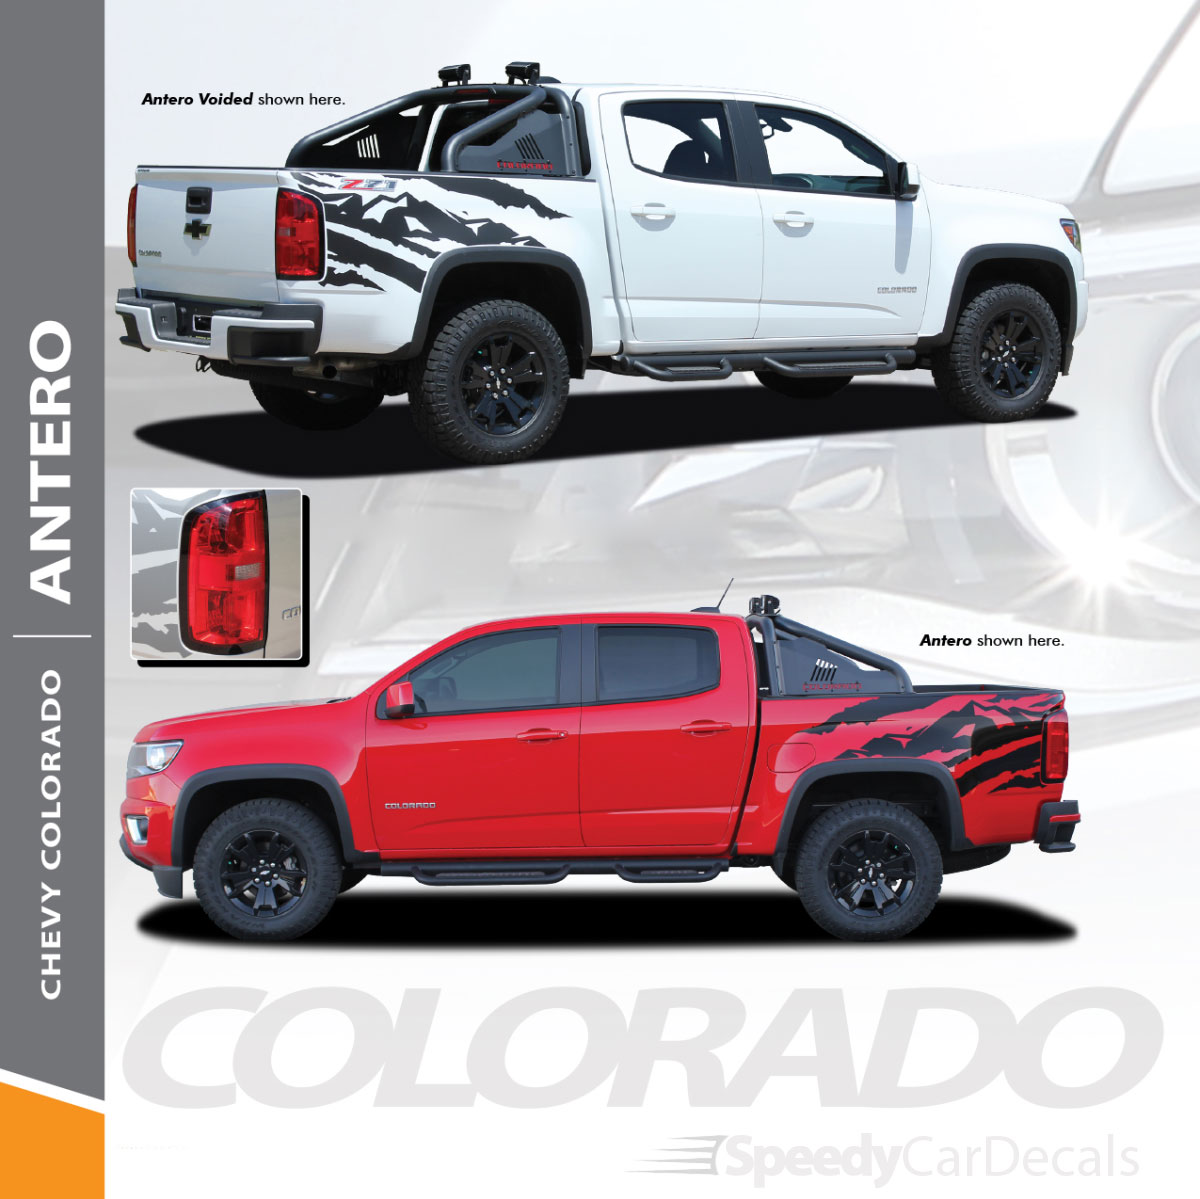 Antero 2015 2018 2019 chevy colorado rear truck bed accent vinyl graphic decal stripe